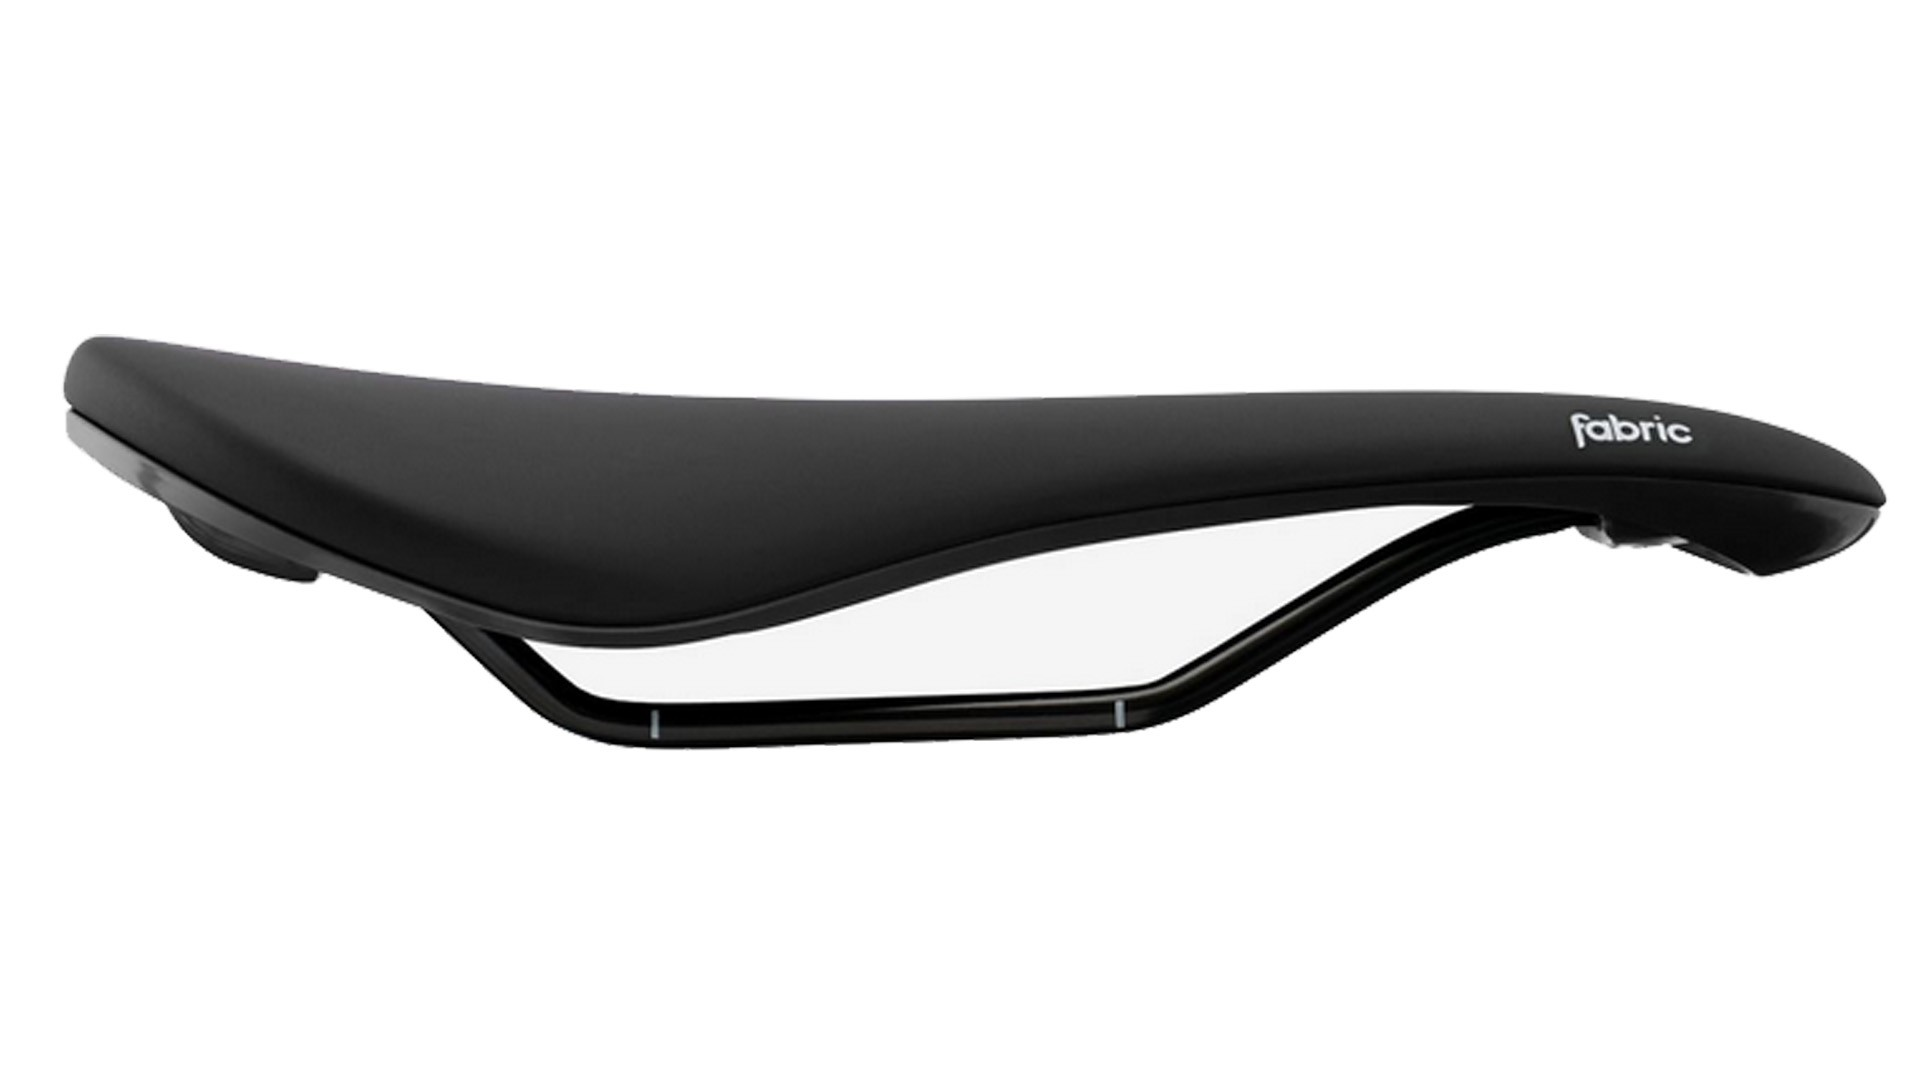 Fabric's popular Scoop saddle in black with white logo detail